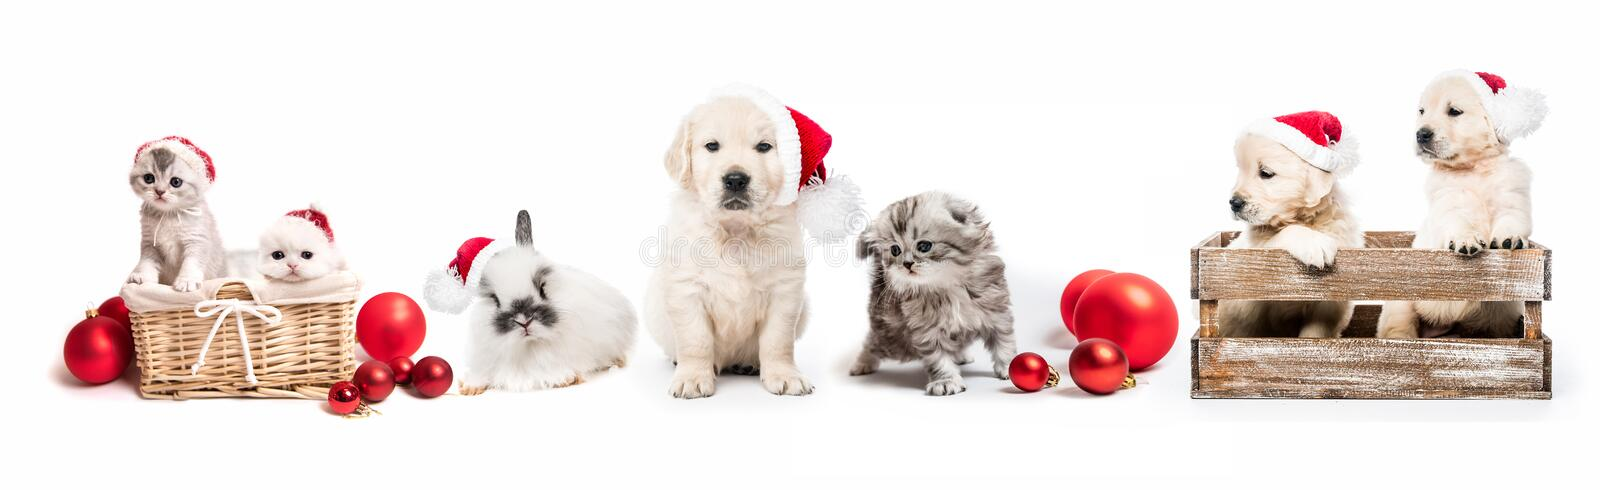 Set of home pets with new year decorations royalty free stock photos